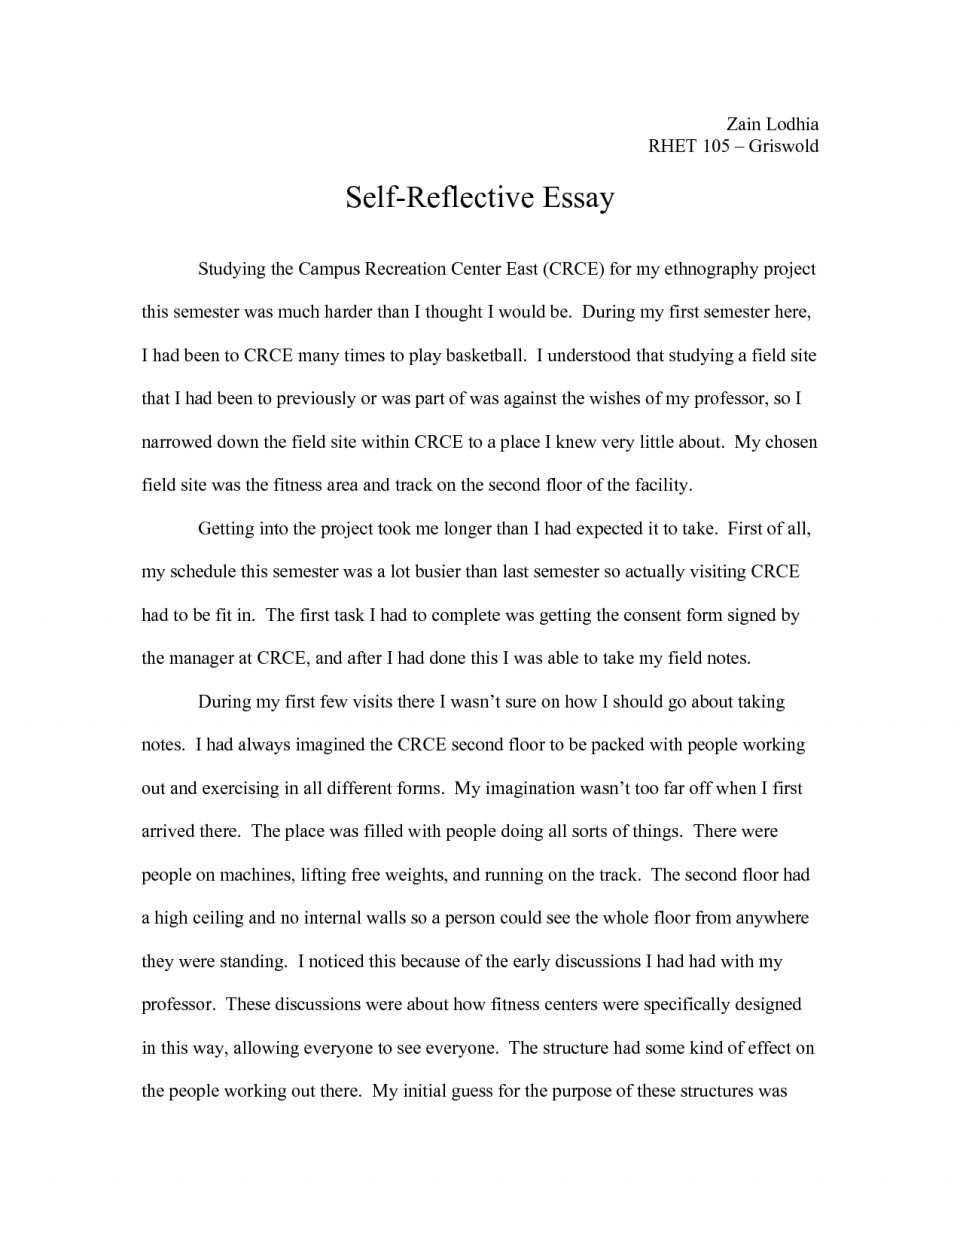 007 Essay Example Qal0pwnf46 Good Fascinating Examples University Explanatory For Middle School Introduction 960